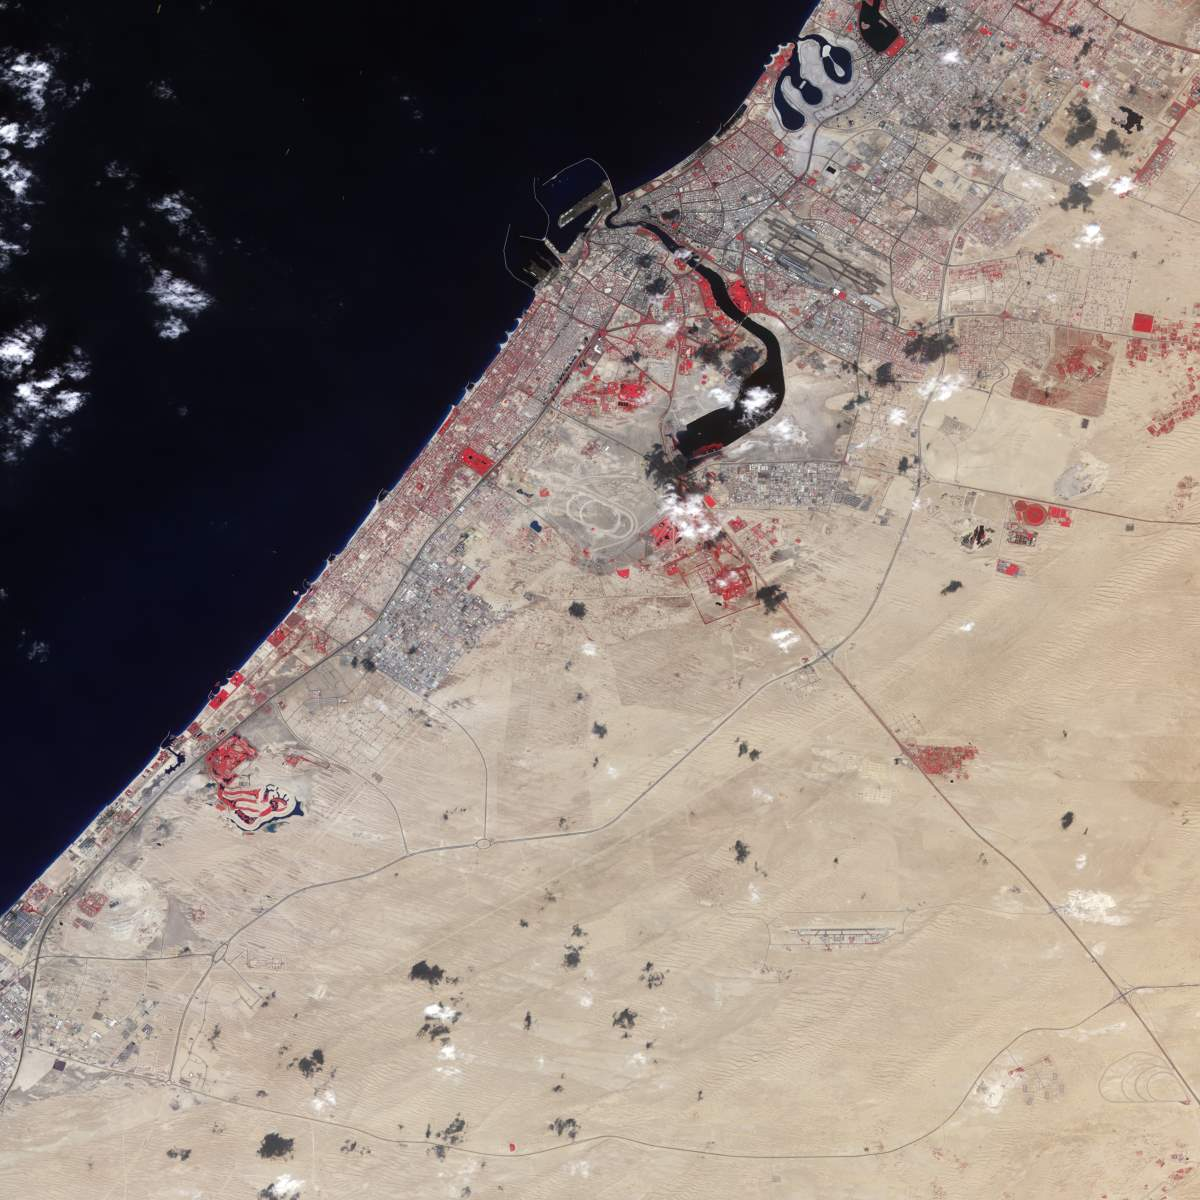 Changing Earth: Dubai, November 11, 2000